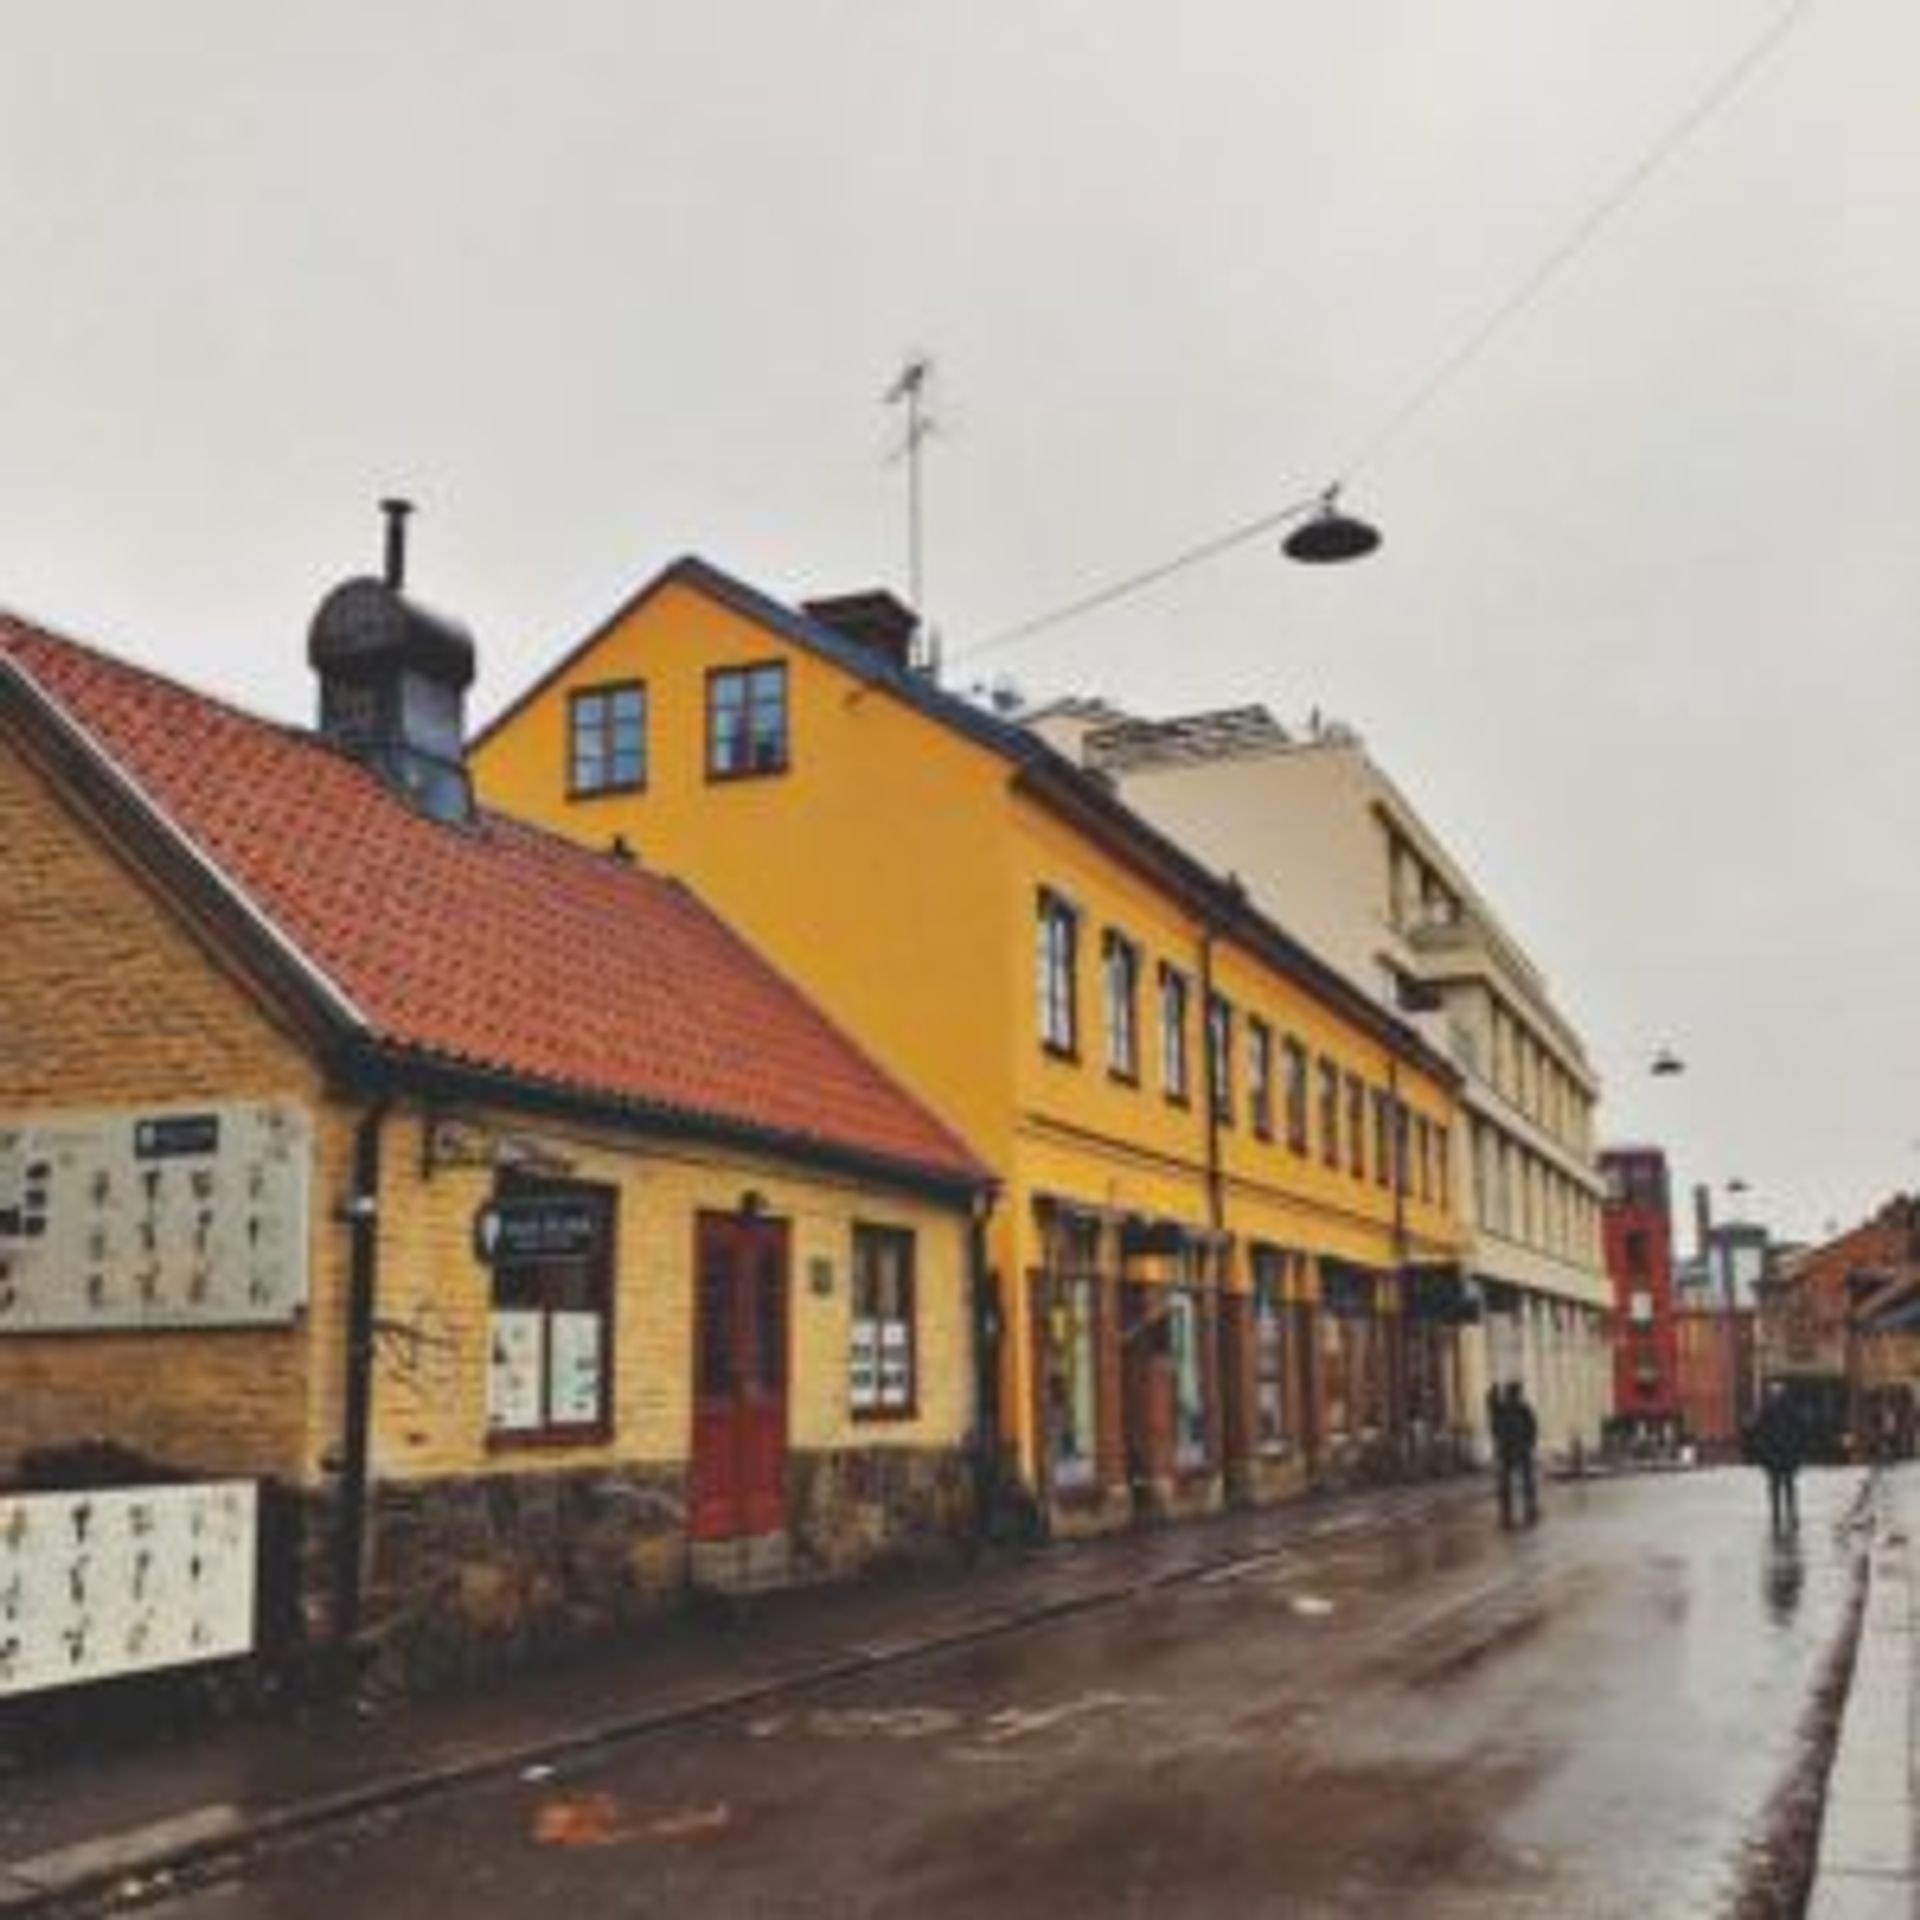 Old, colourful buildings along a road in Norrköping.